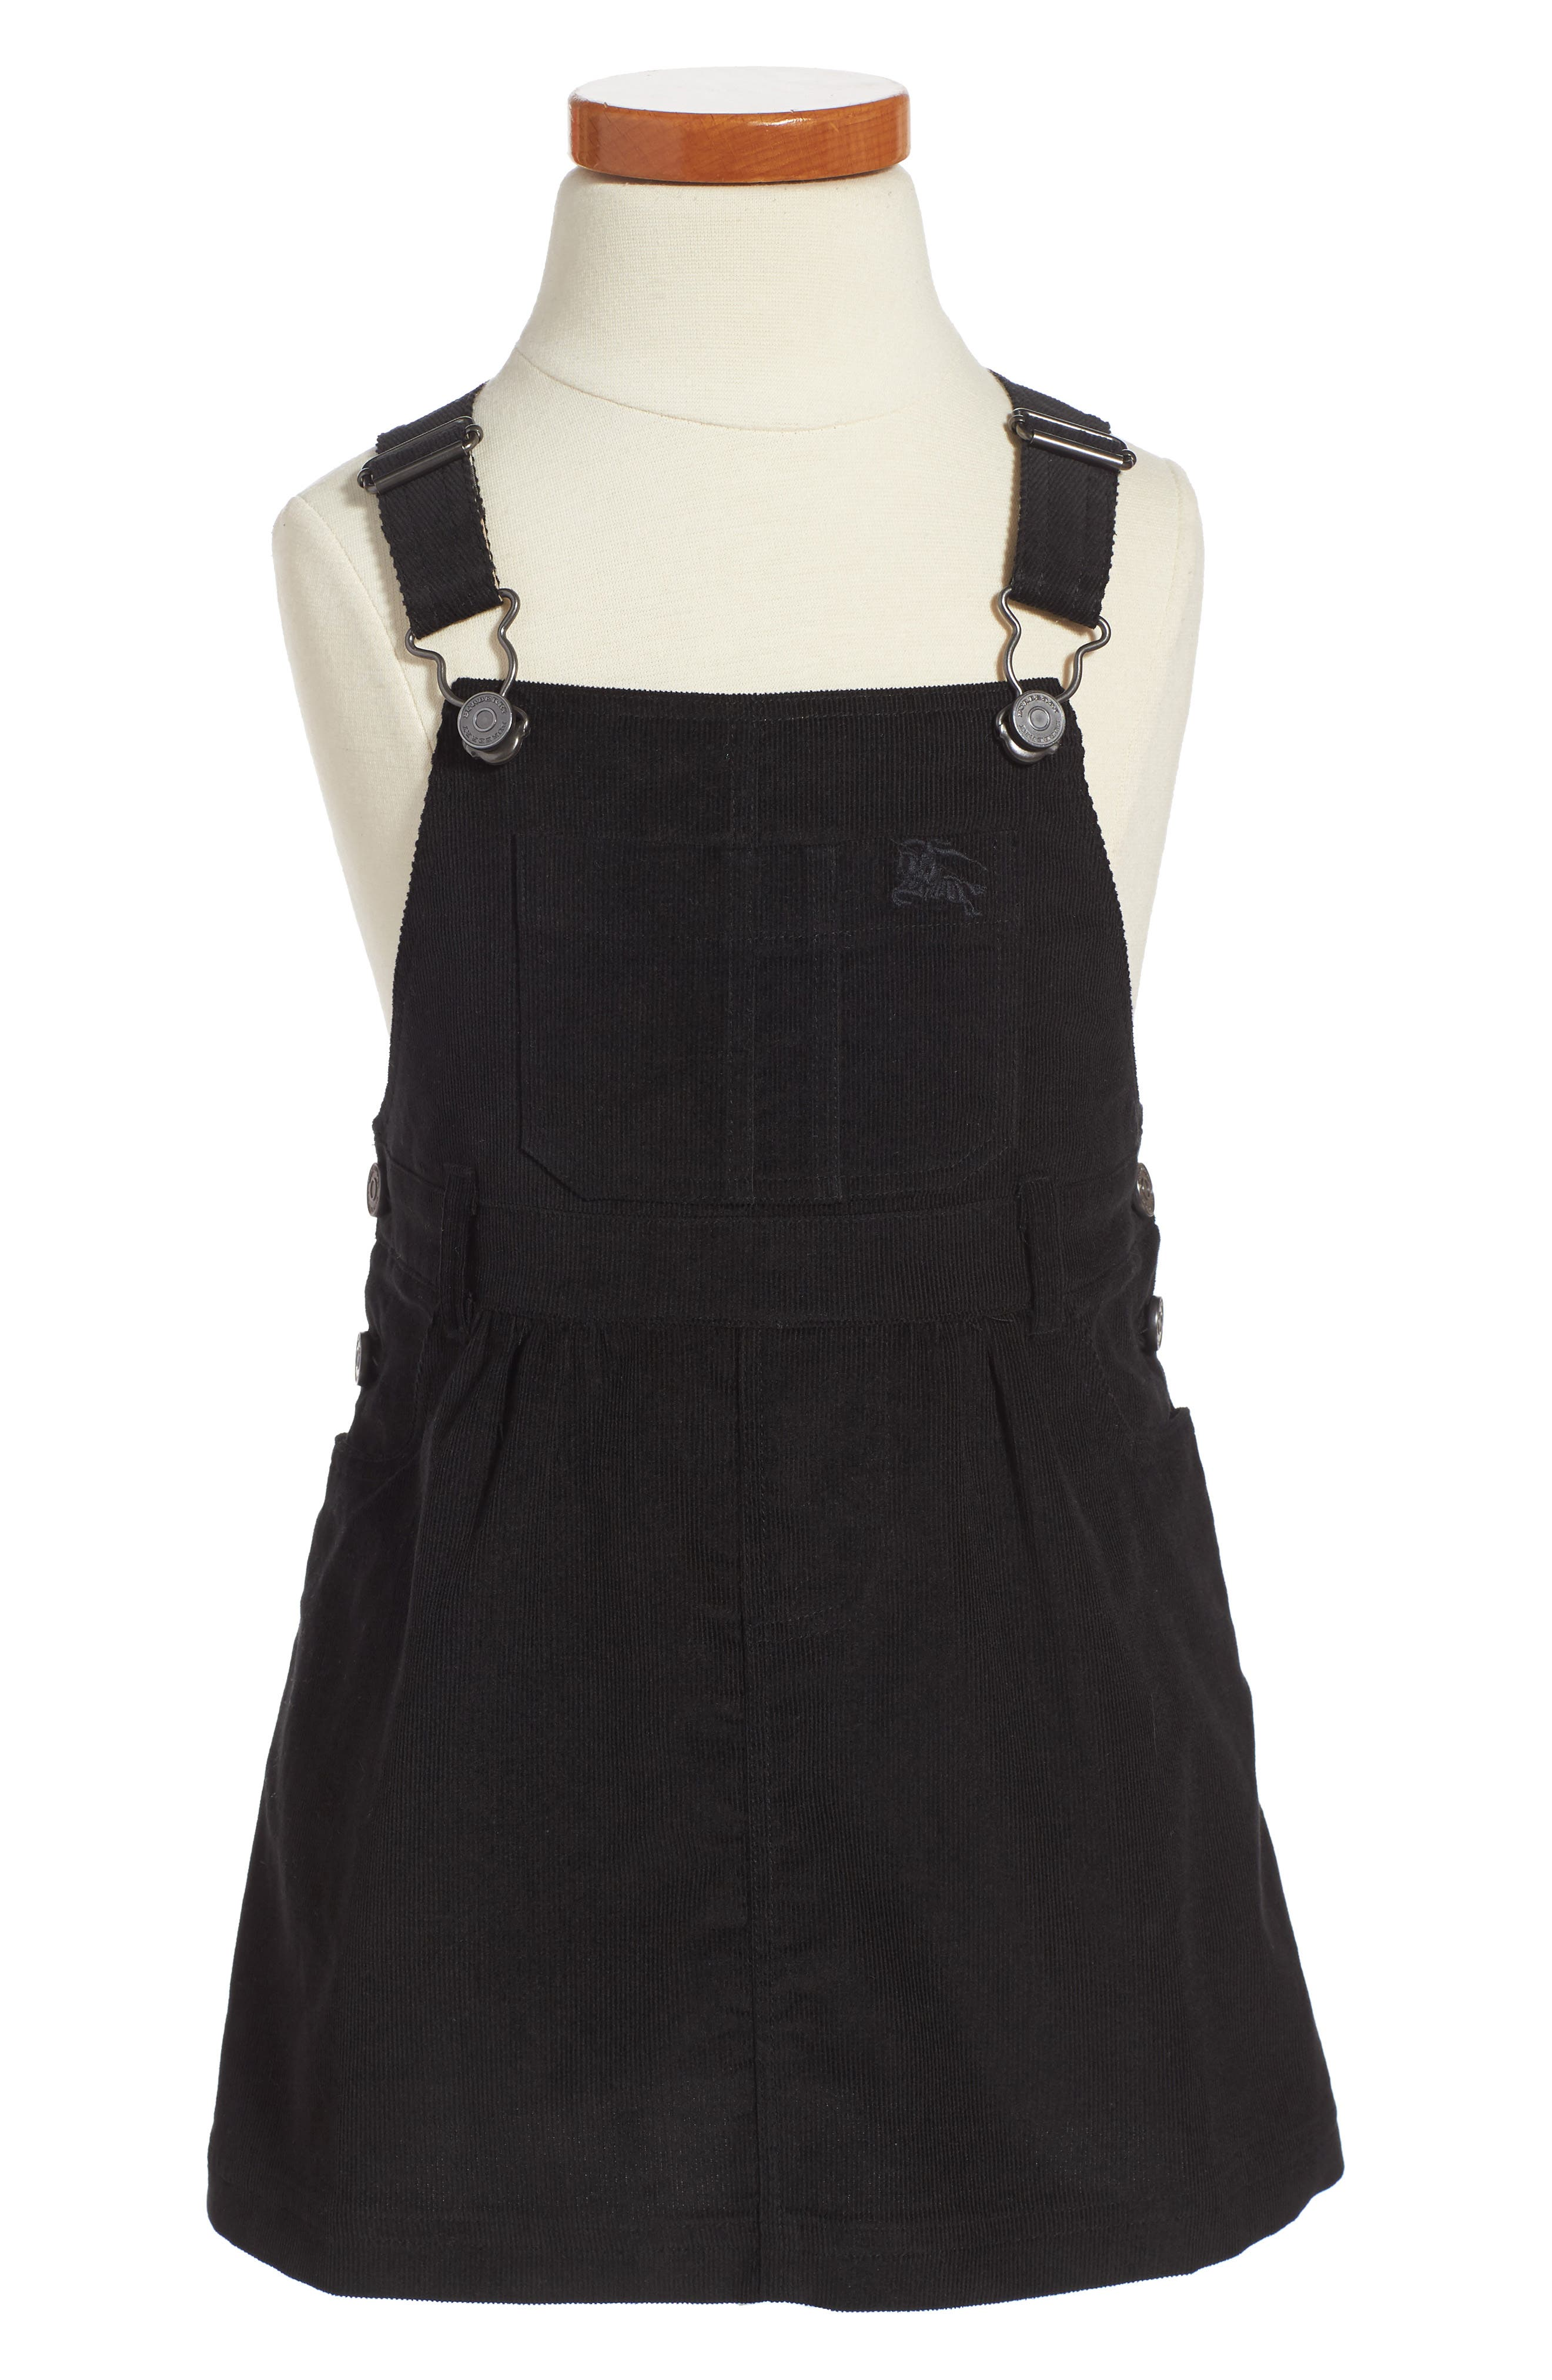 Alternate Image 1 Selected - Burberry Wilma Overalls Dress (Toddler Girls)